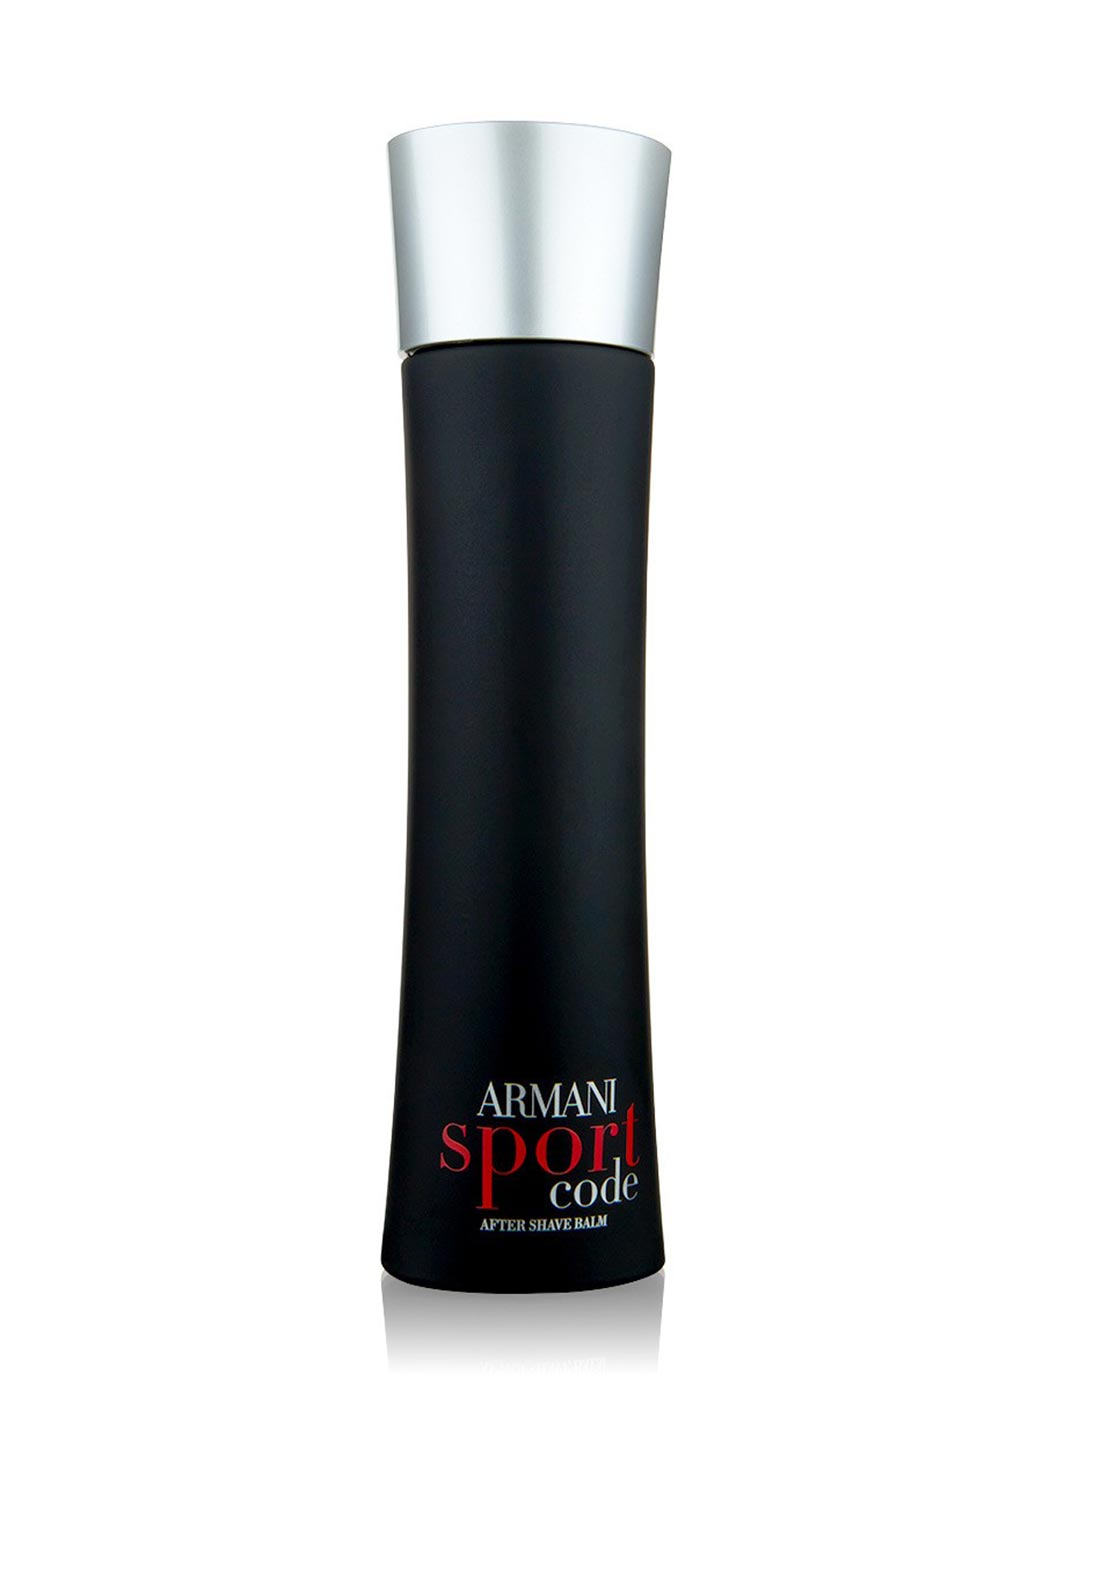 Armani Code Sport Giorgio Armani Aftershave Balm, 100ml